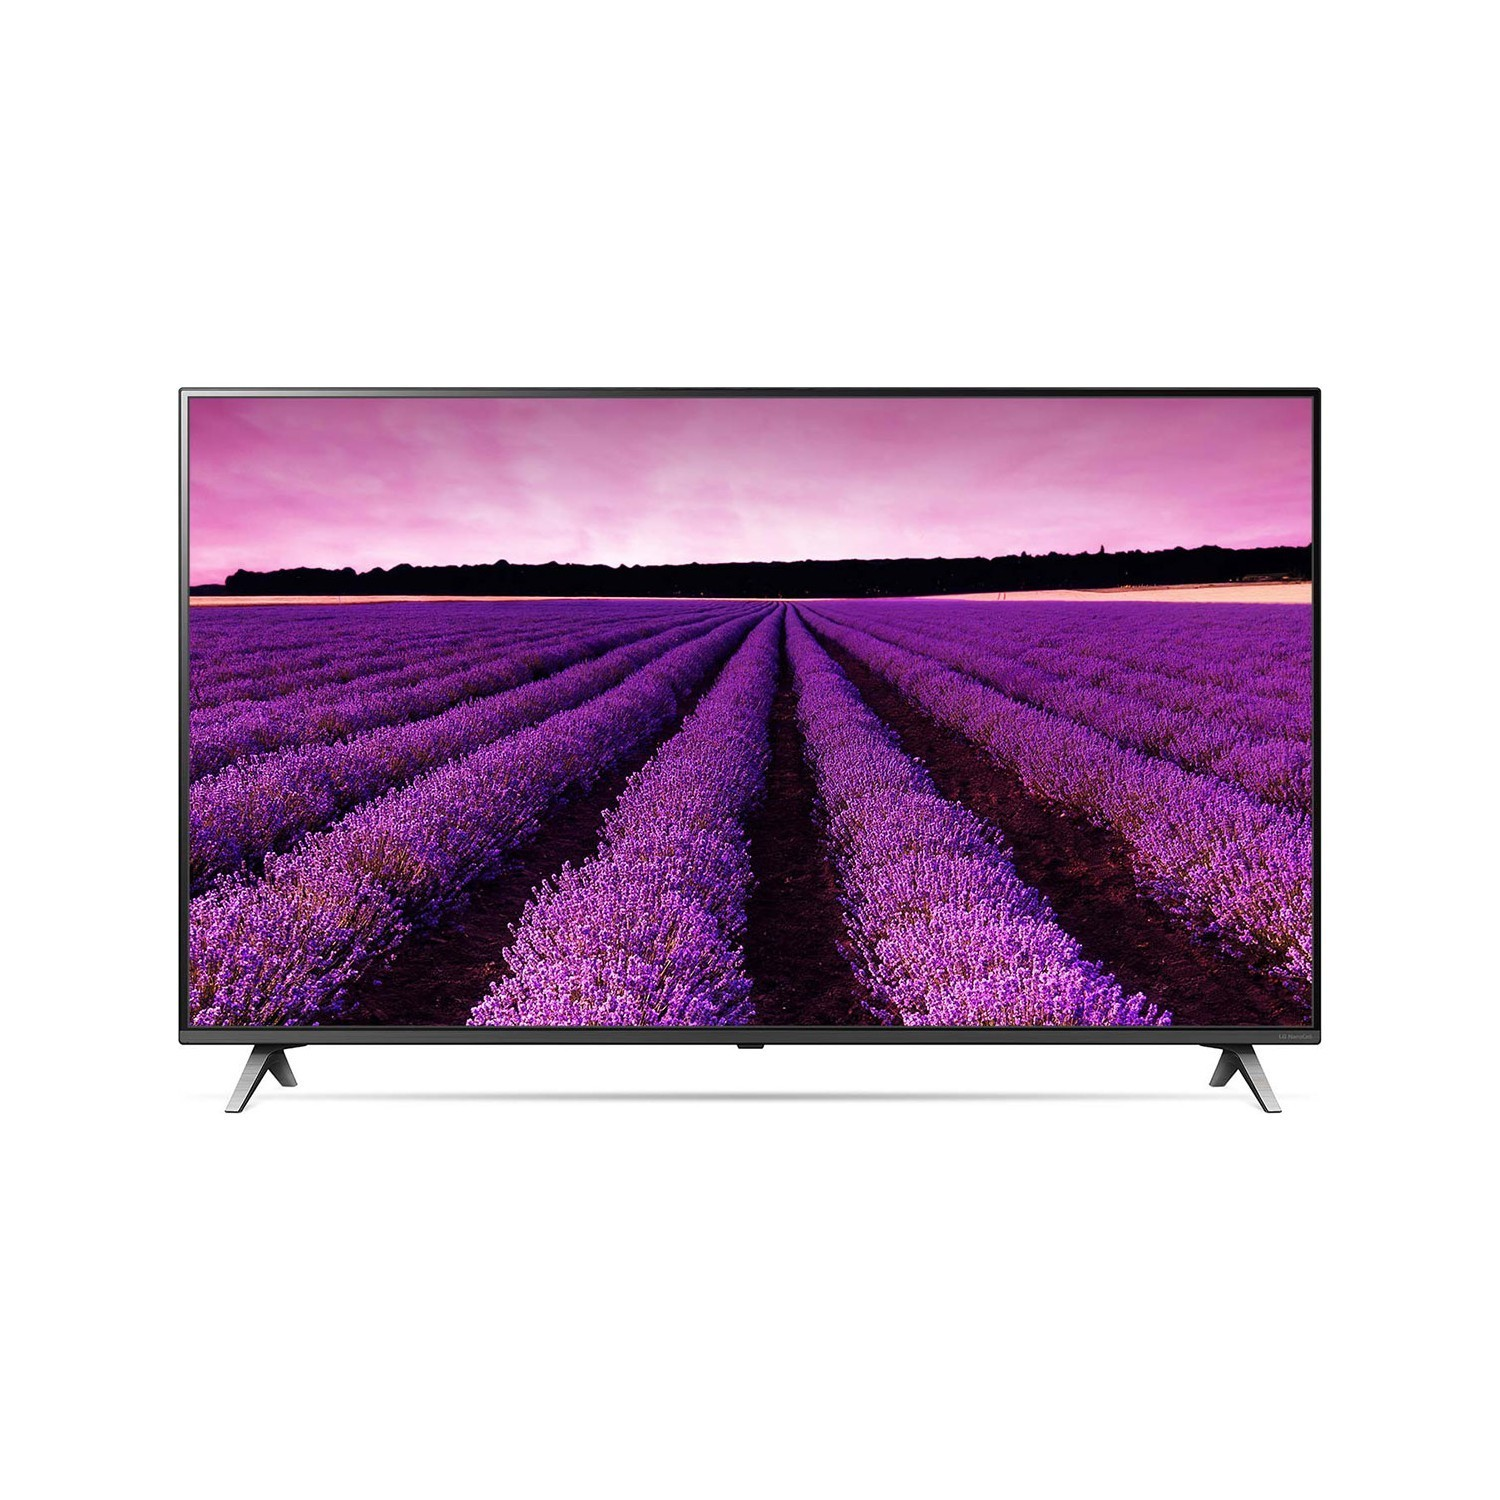 Lot 16031 - + VAT Grade A LG 49 Inch ACTIVE HDR 4K SUPER ULTRA HD NANO LED SMART TV WITH FREEVIEW HD & WEBOS &